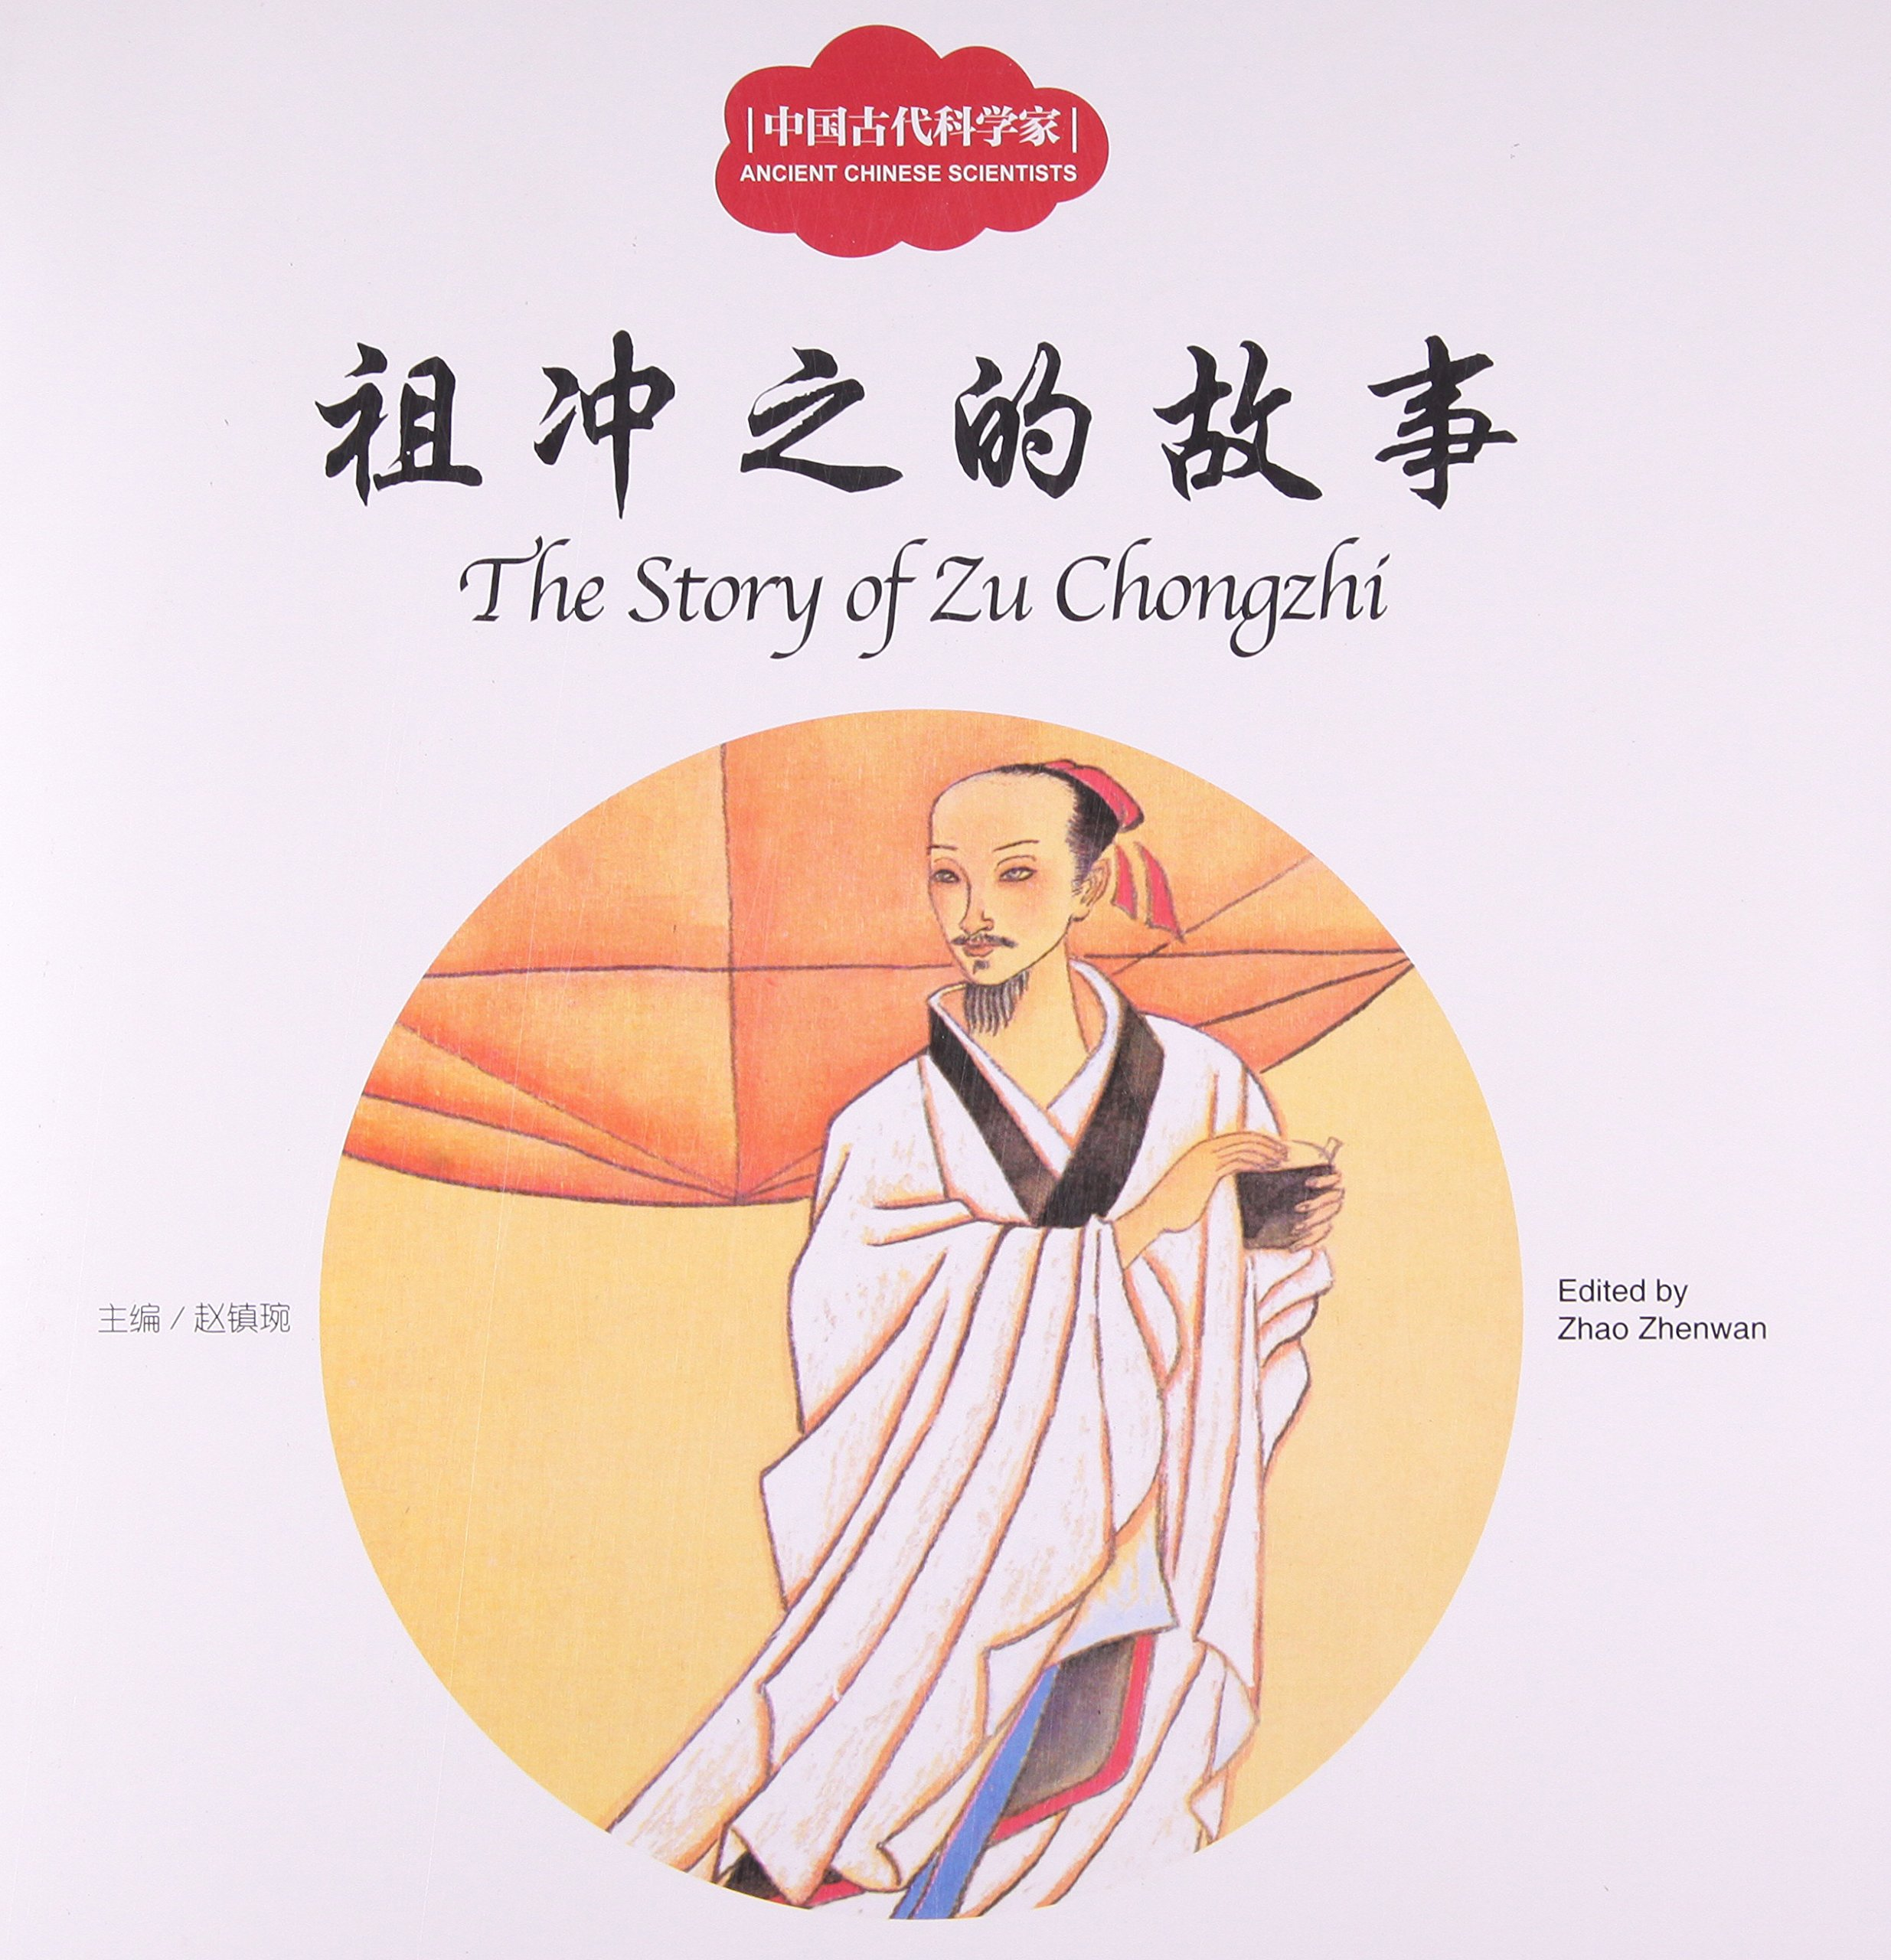 The Story of Zu Chongzhi - First Books for Early Learning Series